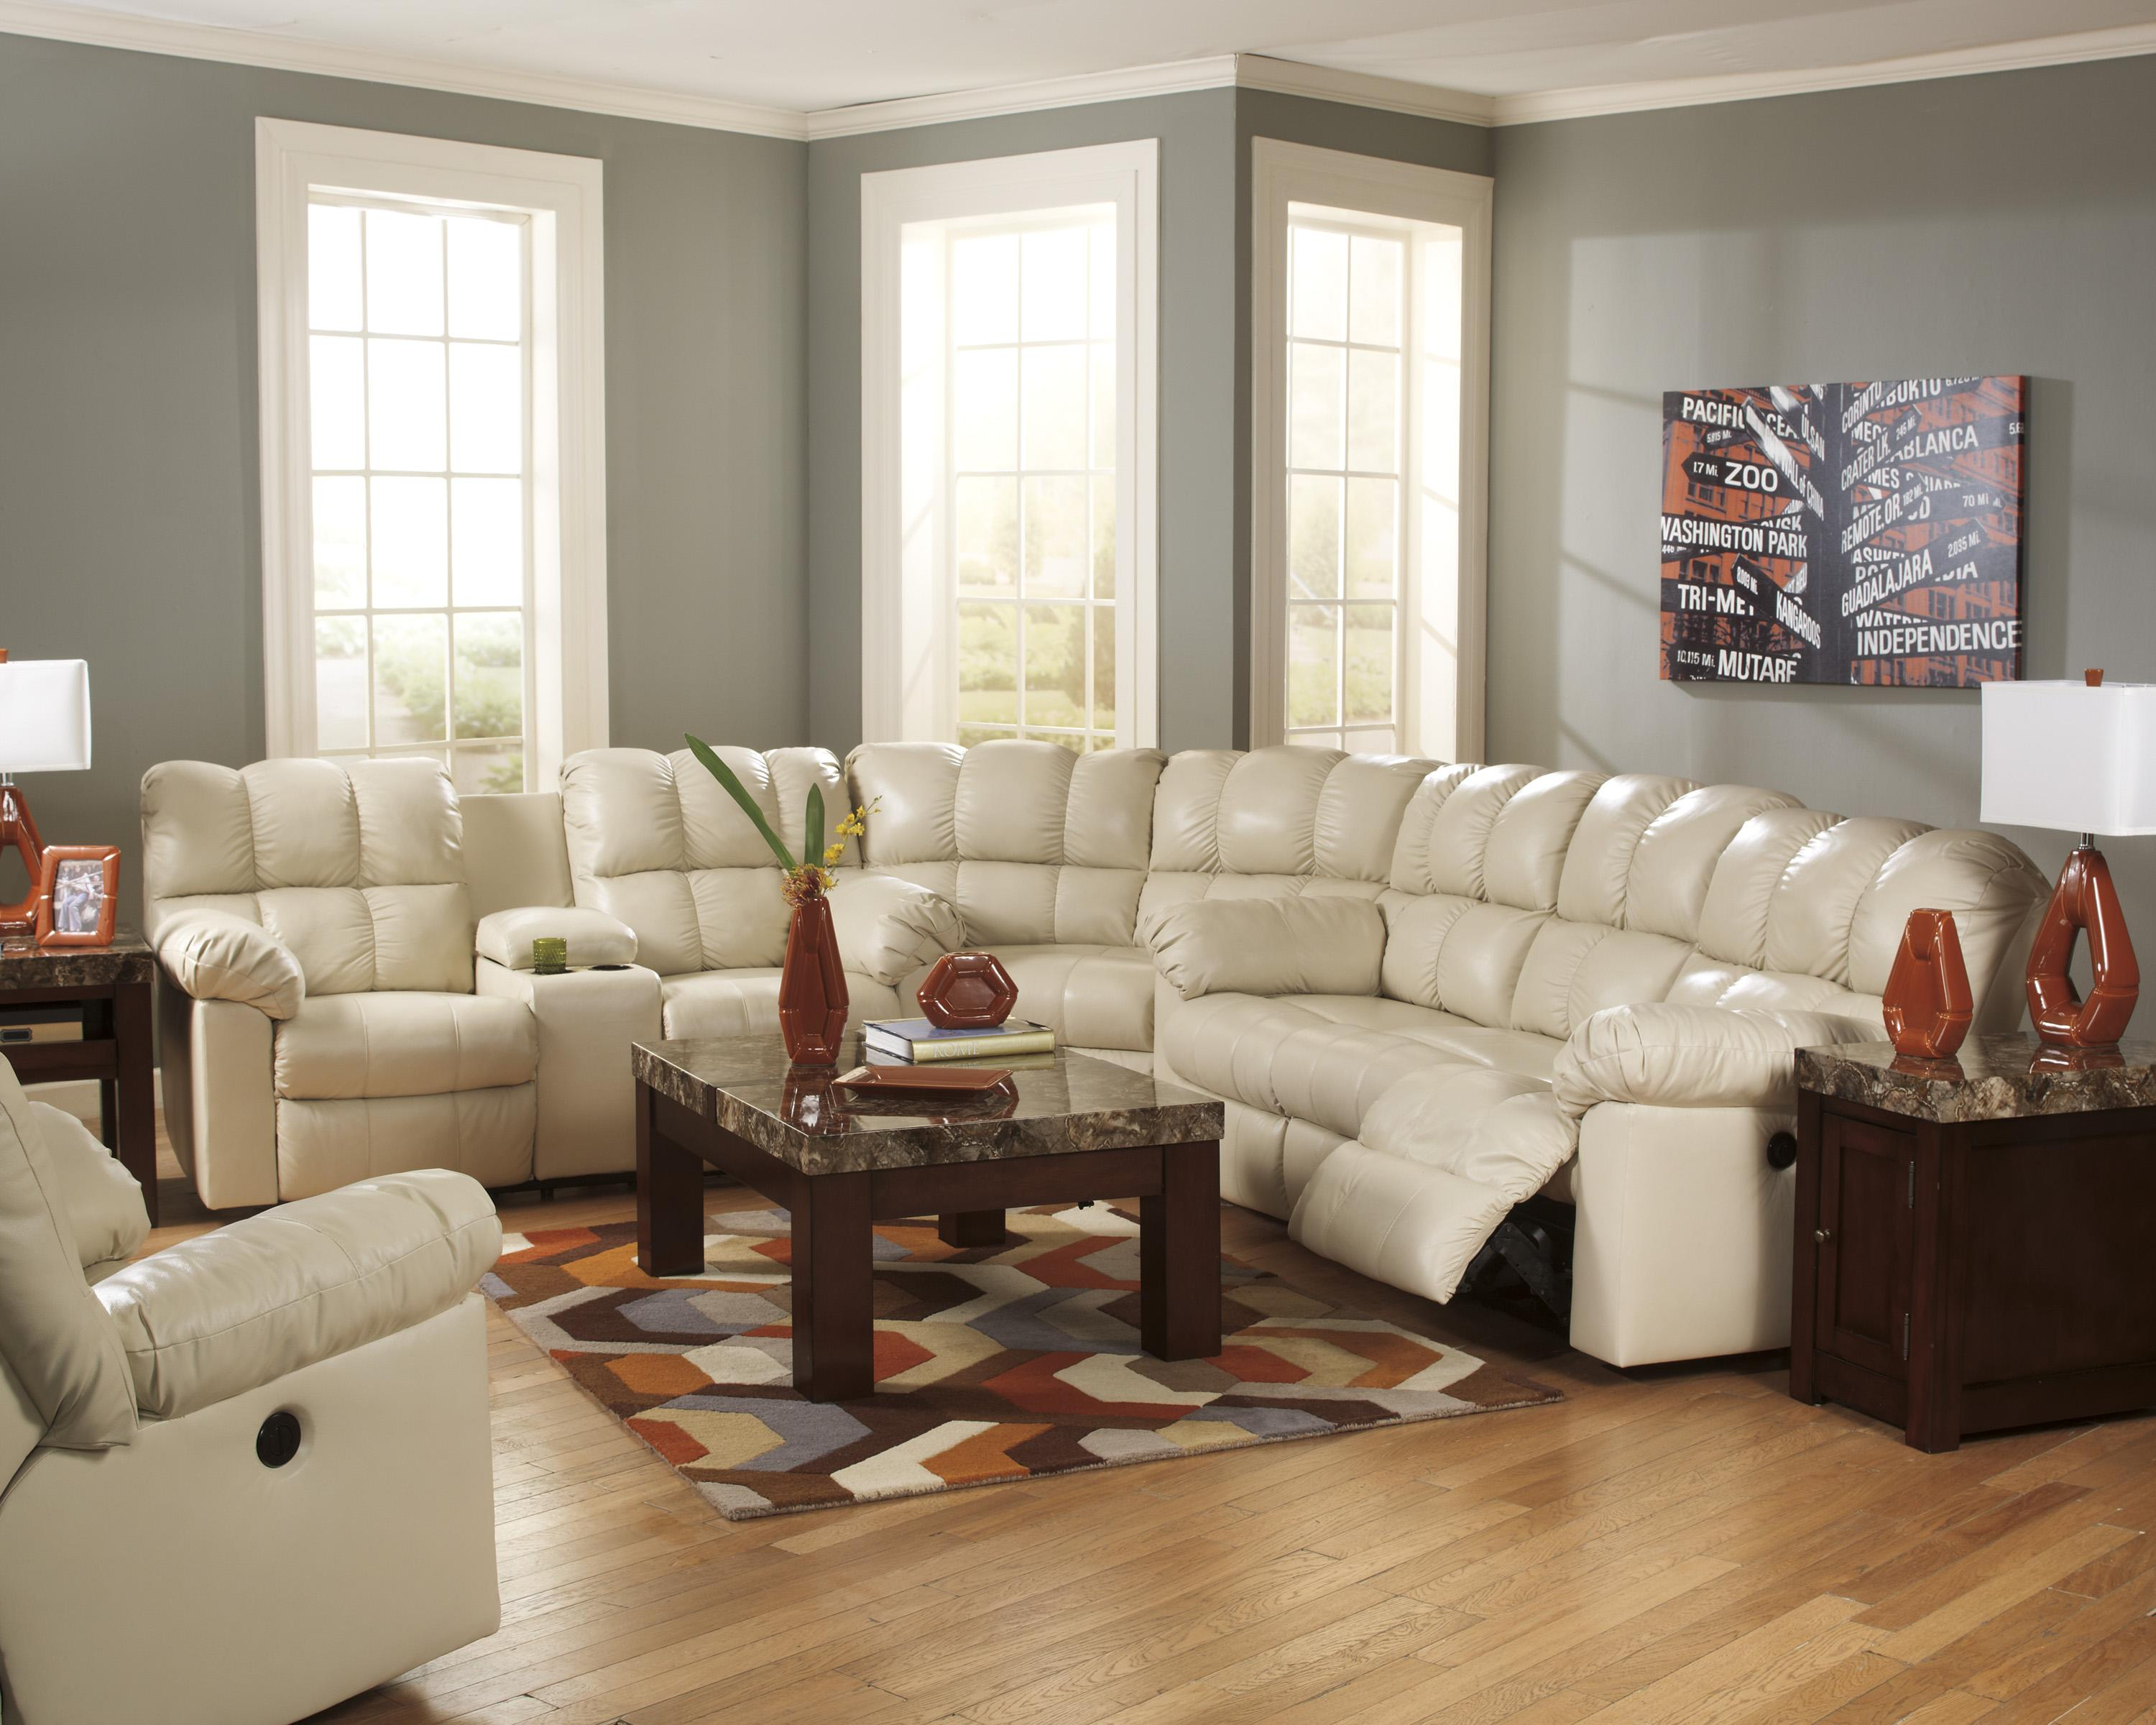 Signature Design by Ashley Kennard - Cream Reclining Living Room Group - Item Number: 29002 Living Room Group 1